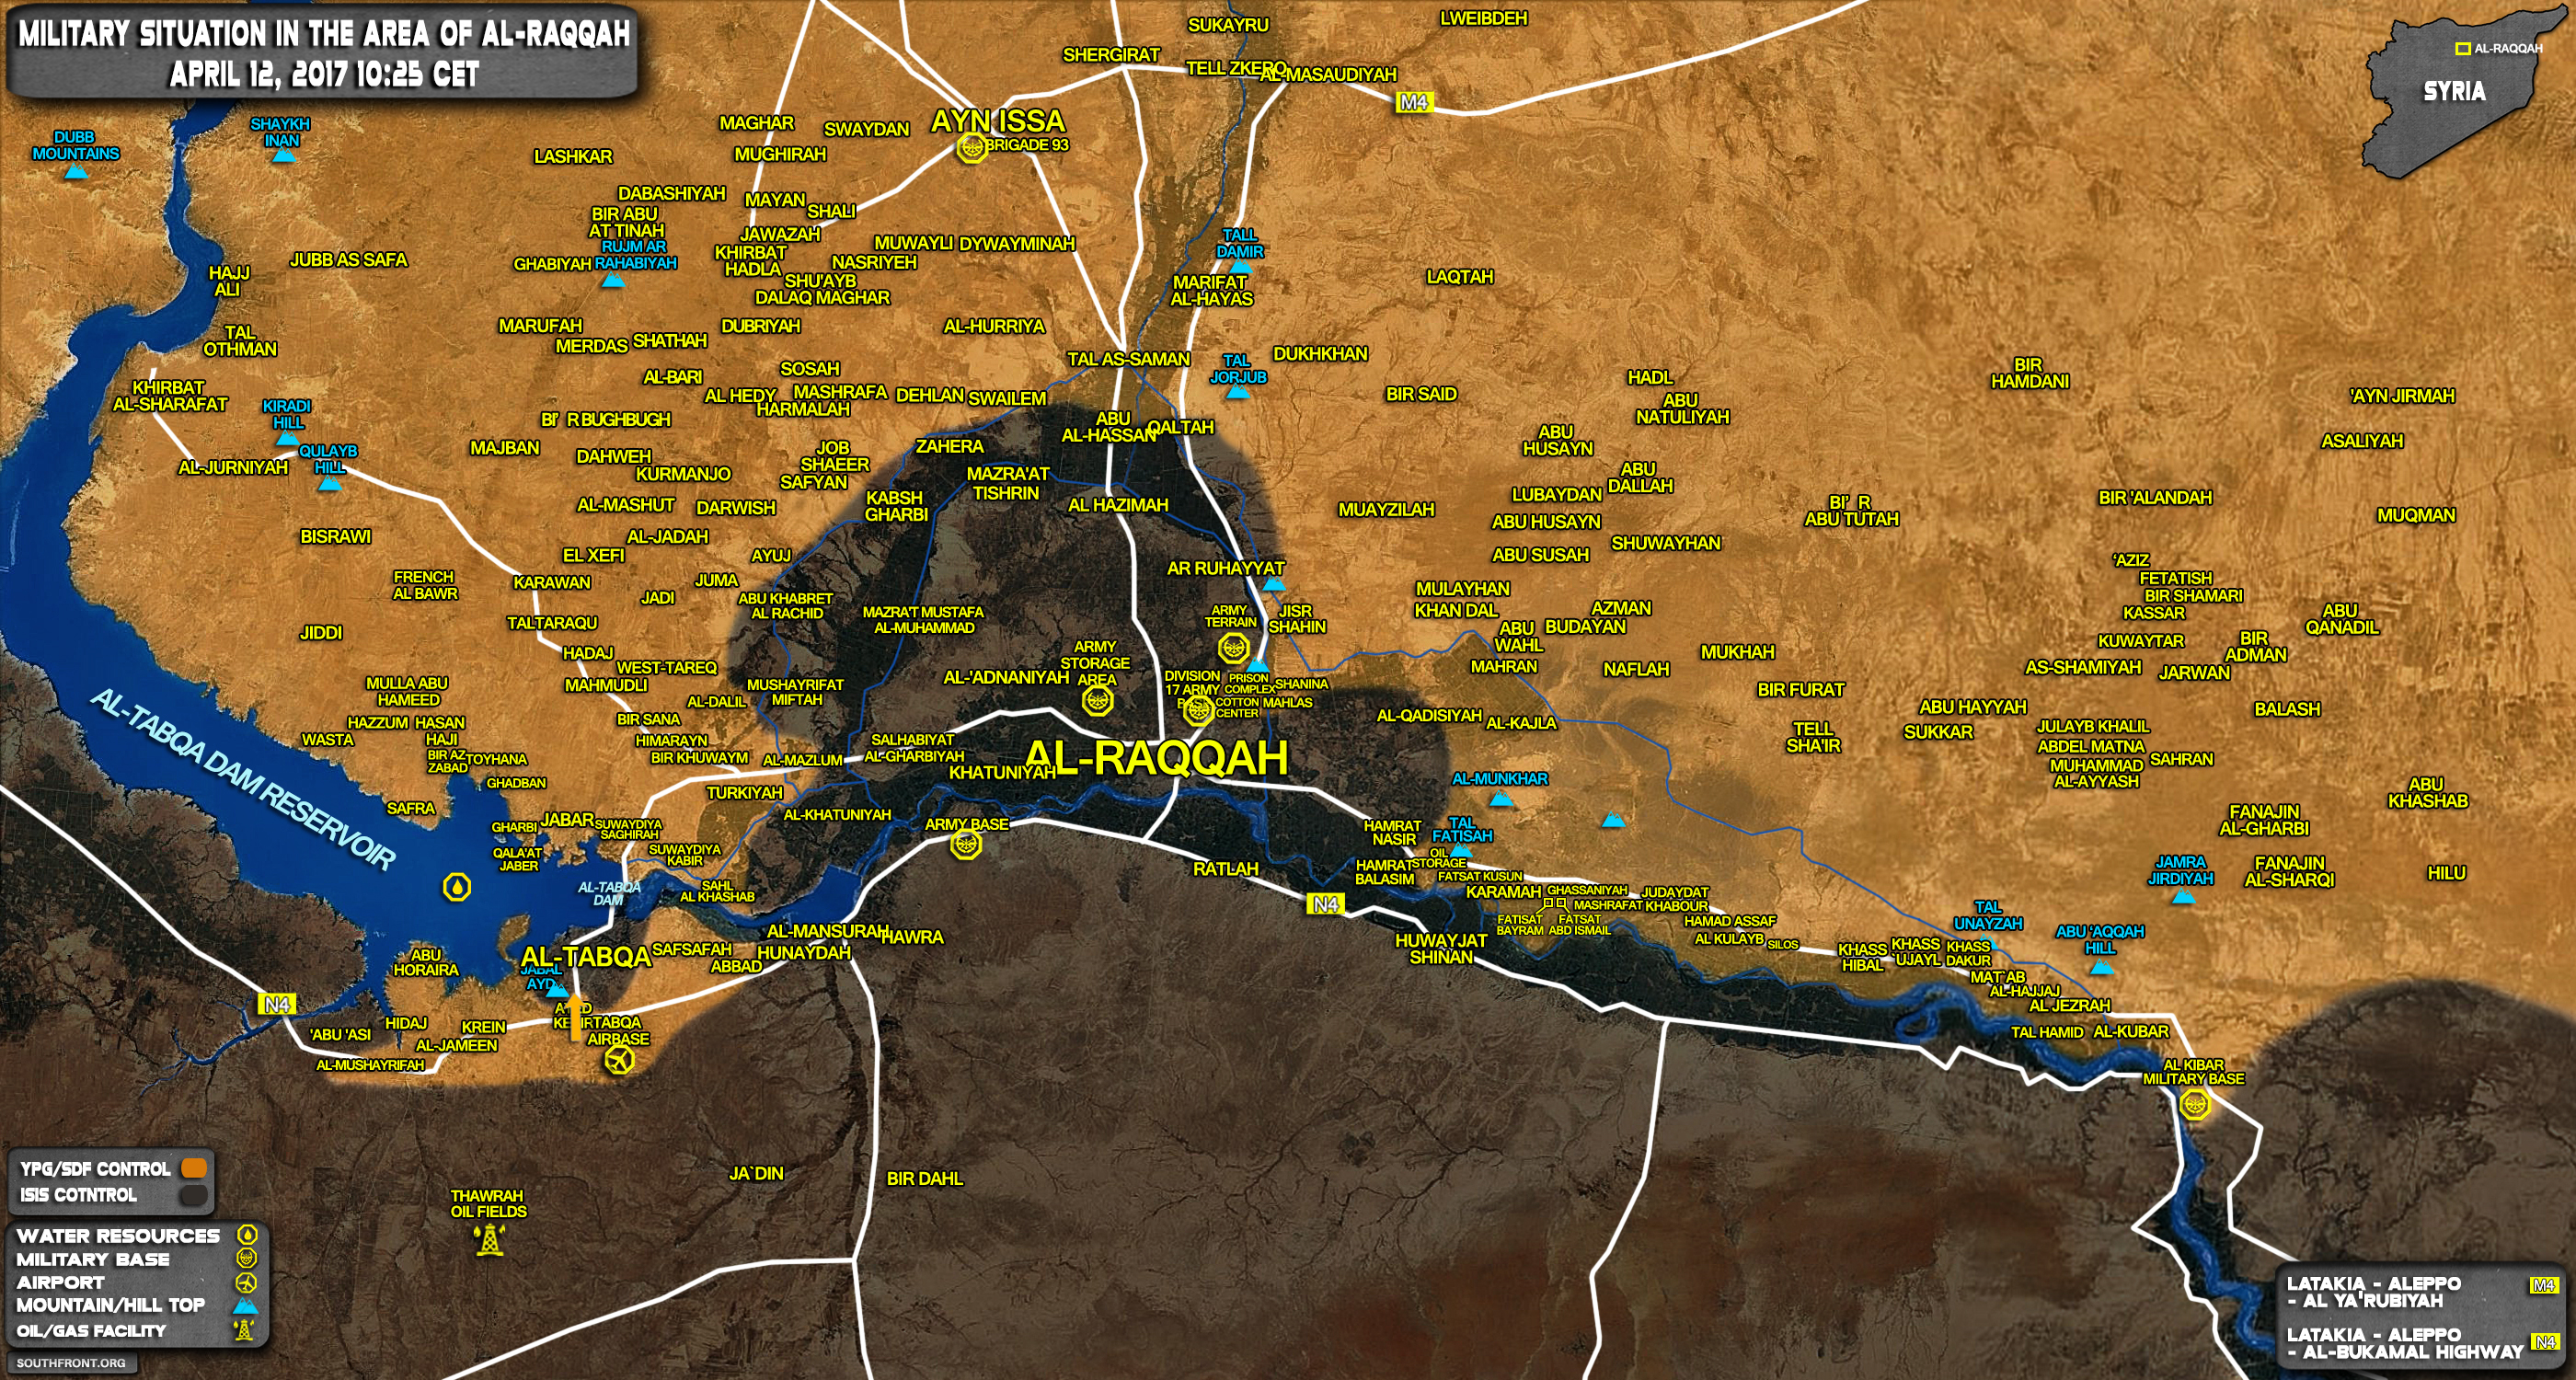 Military Situation In Area Of Raqqah On April 12, 2017 (Syria Map Update)